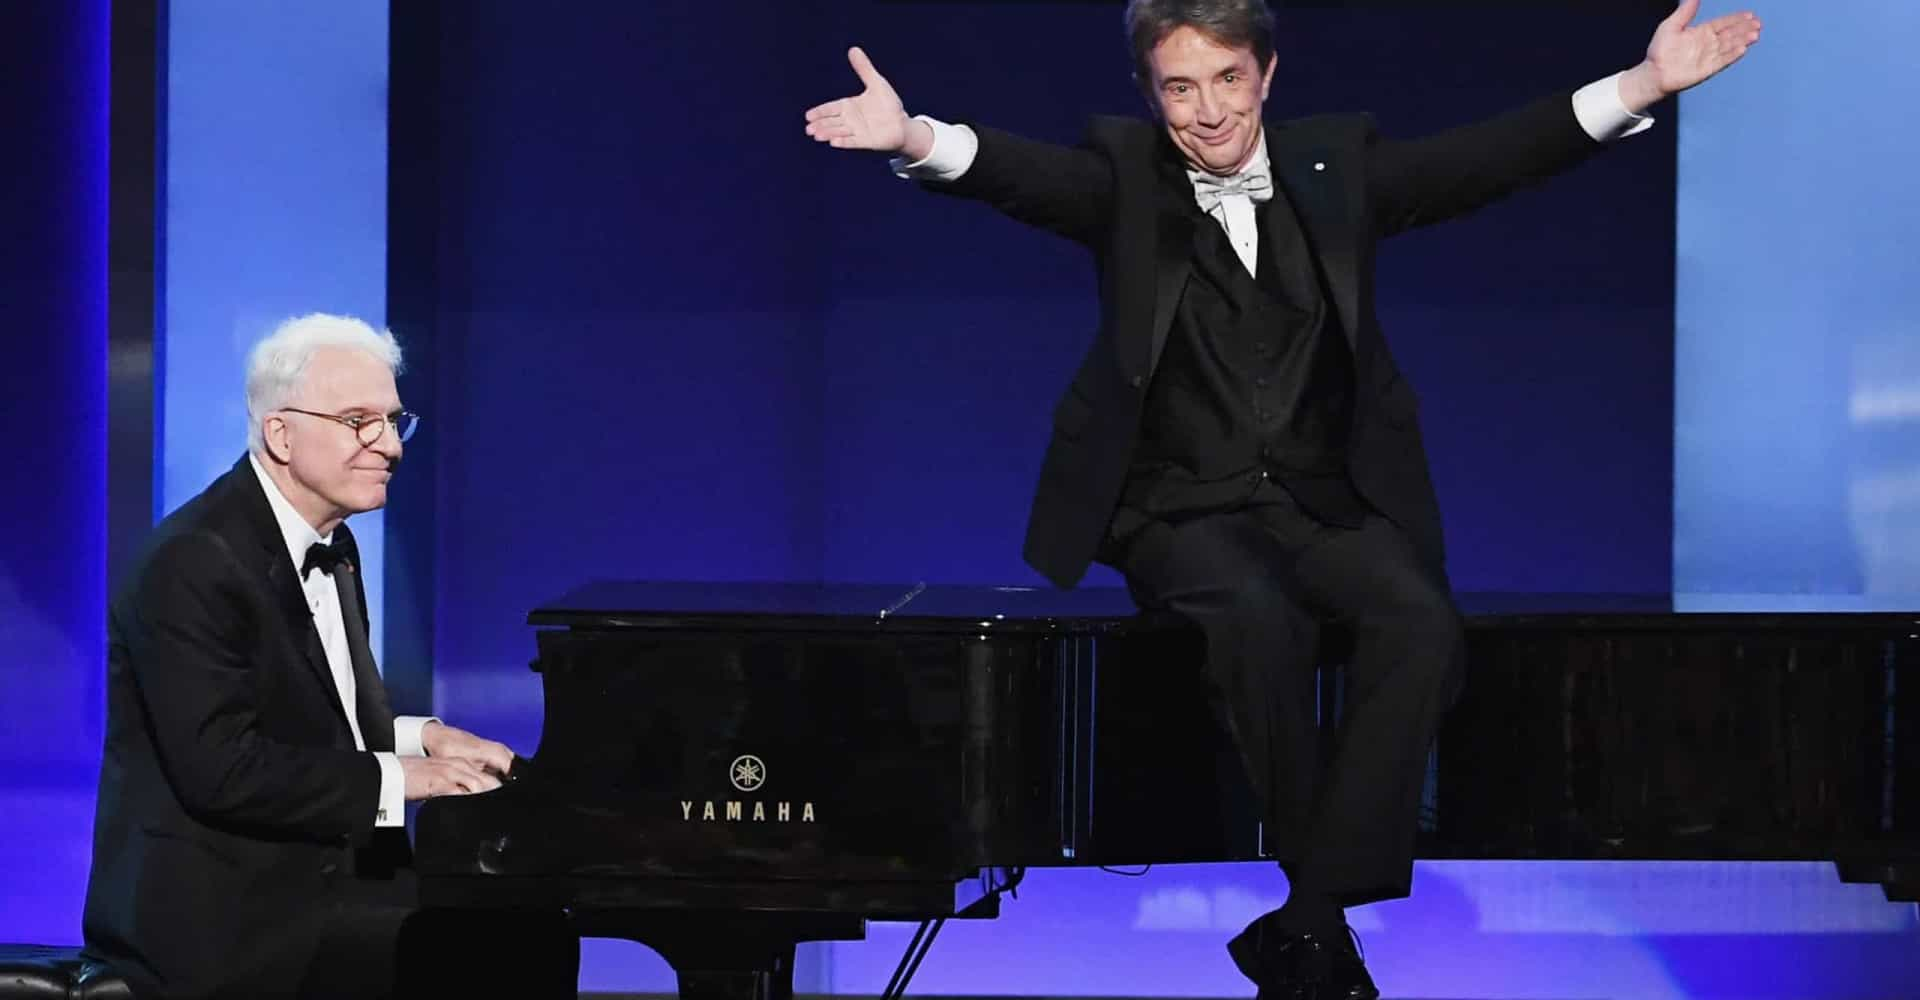 Late-night legends: Martin Short and Steve Martin return